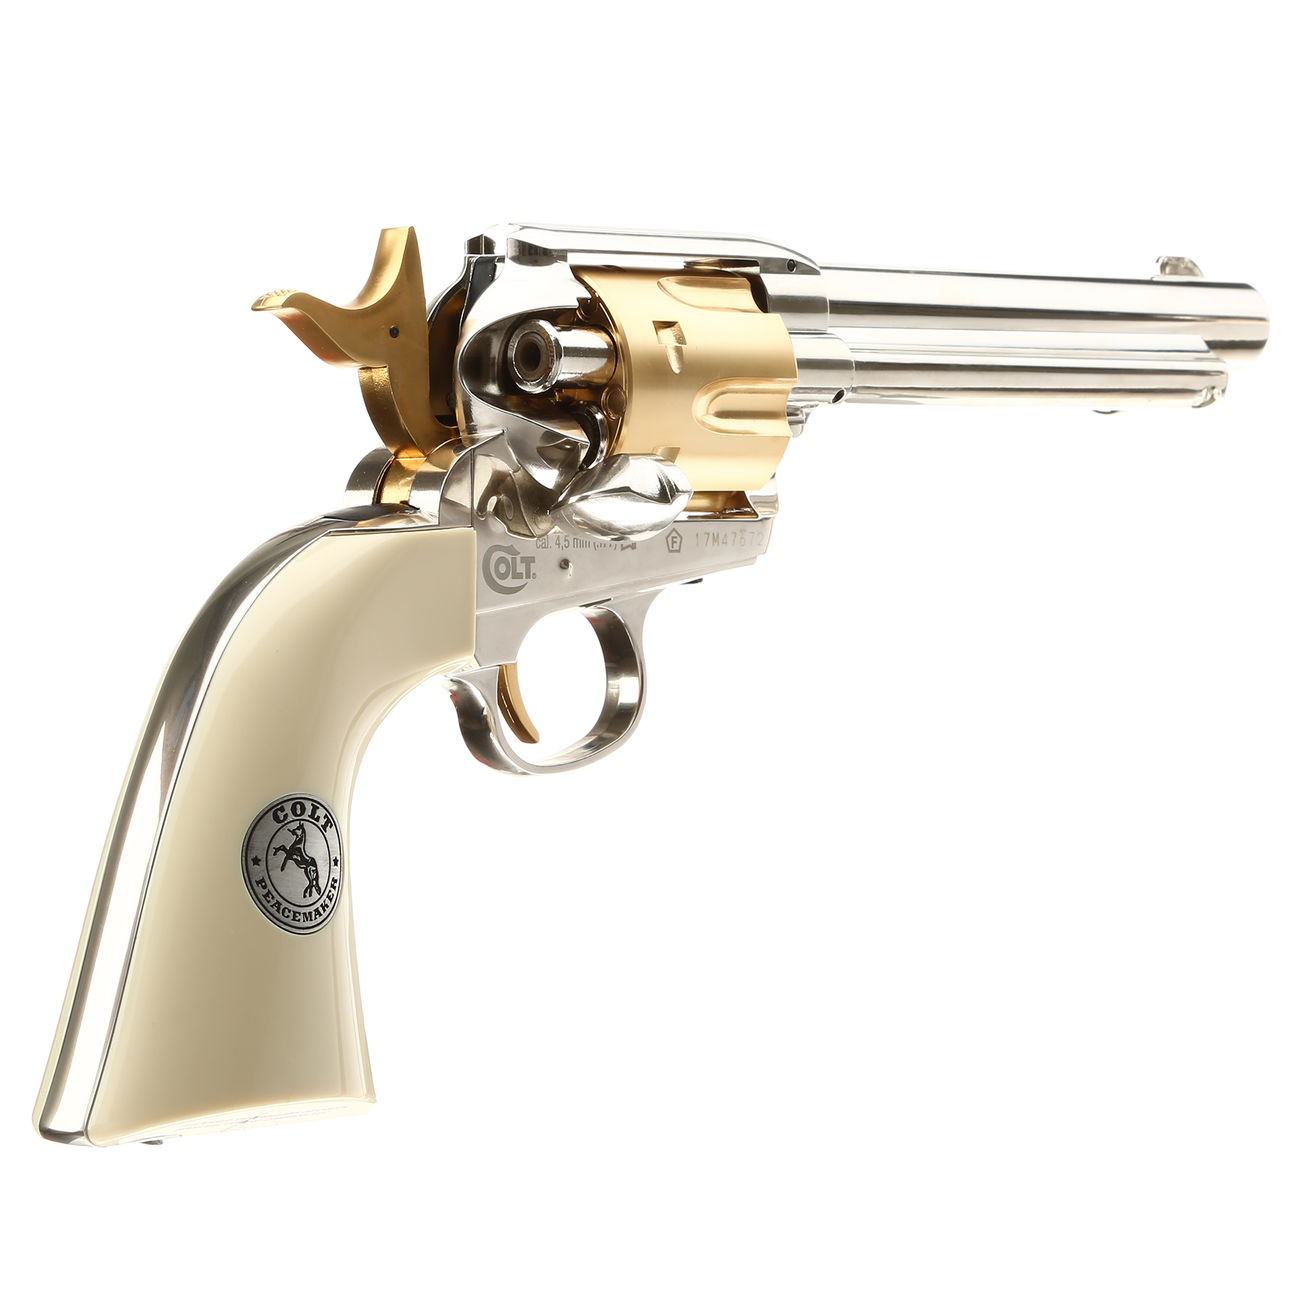 Colt Single Action Army 45 gold / nickel finish CO2 Revolver Kal. 4,5mm Diabolo gezogener Lauf 4